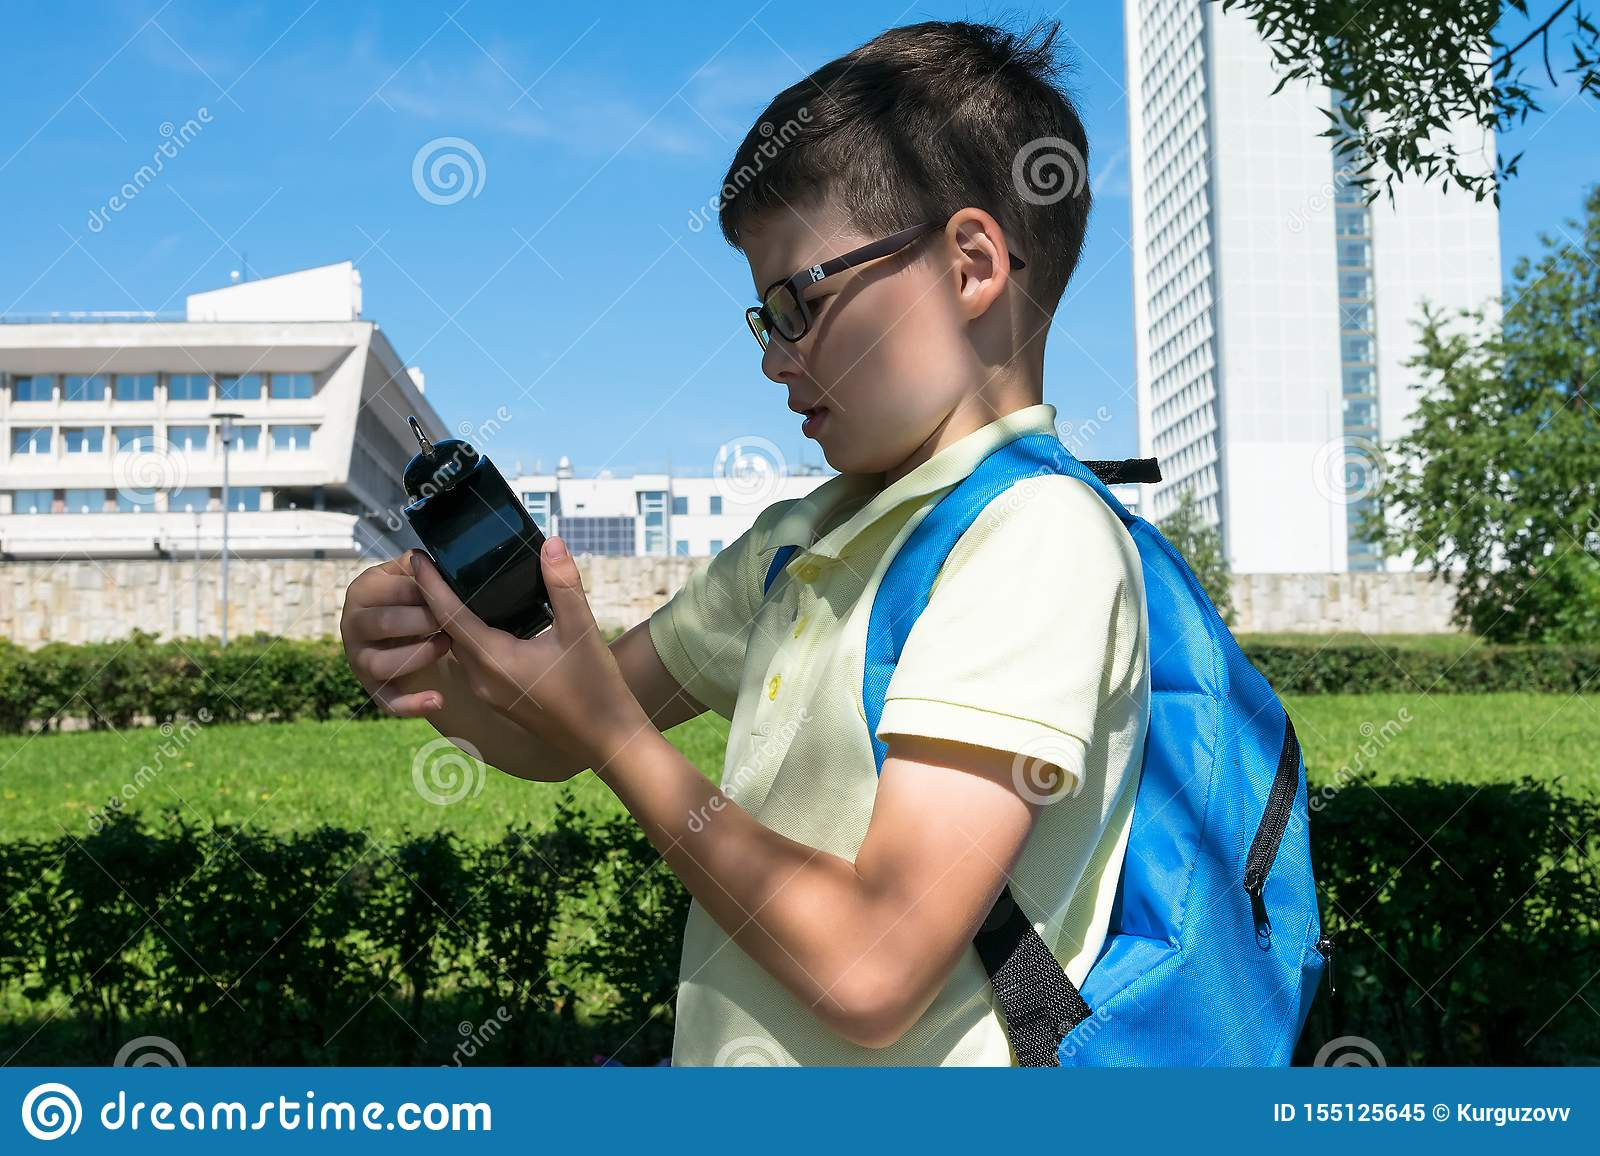 A boy in glasses with a backpack on his back looks at his watch before going to school